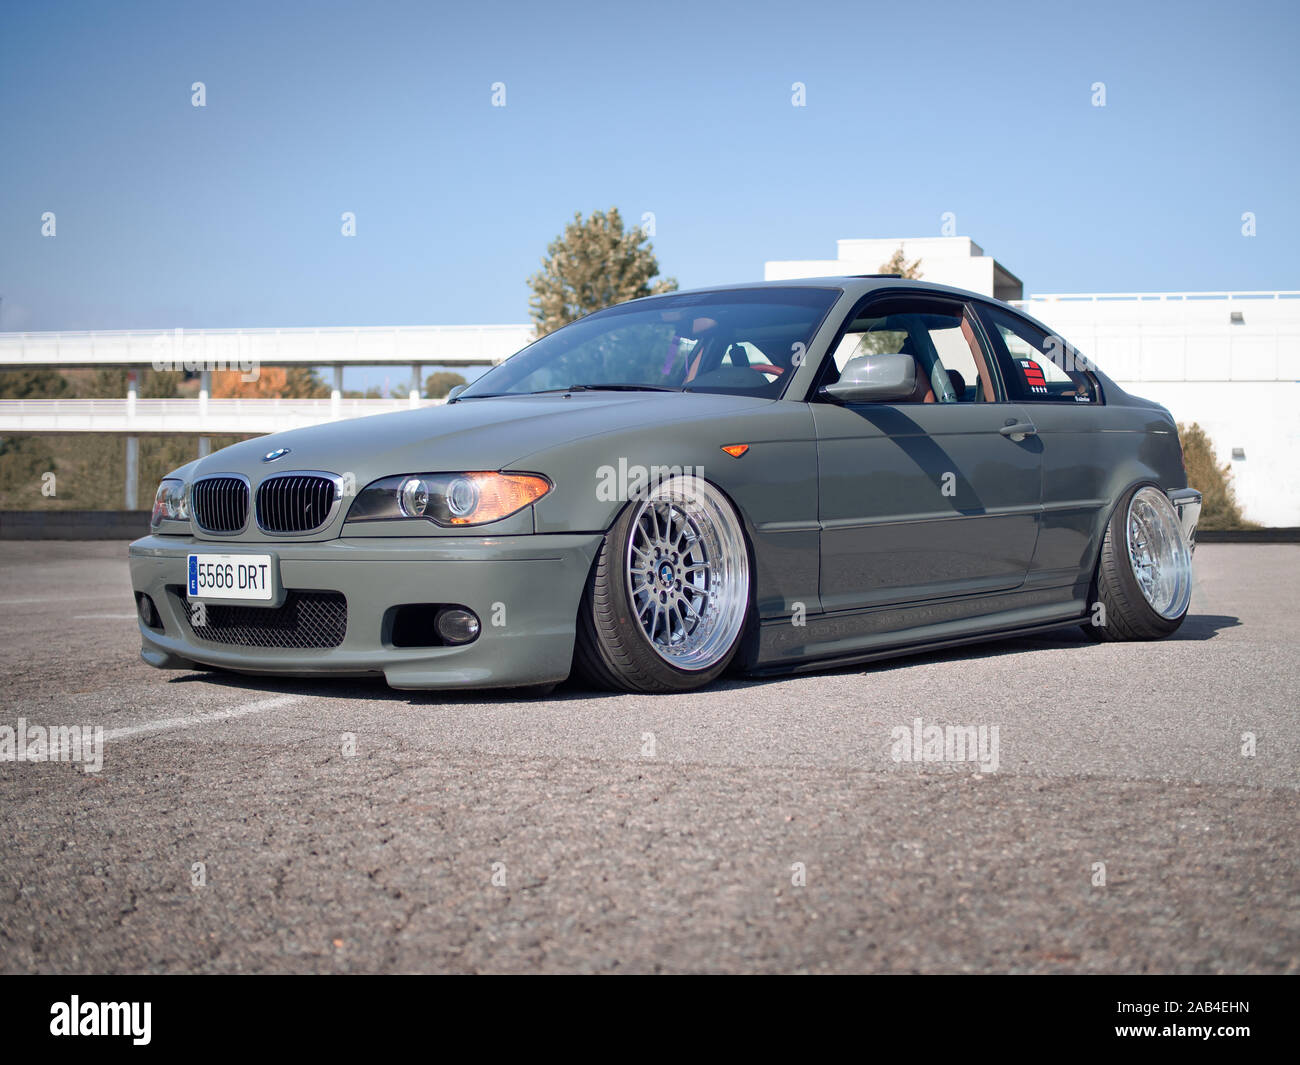 E46 High Resolution Stock Photography And Images Alamy